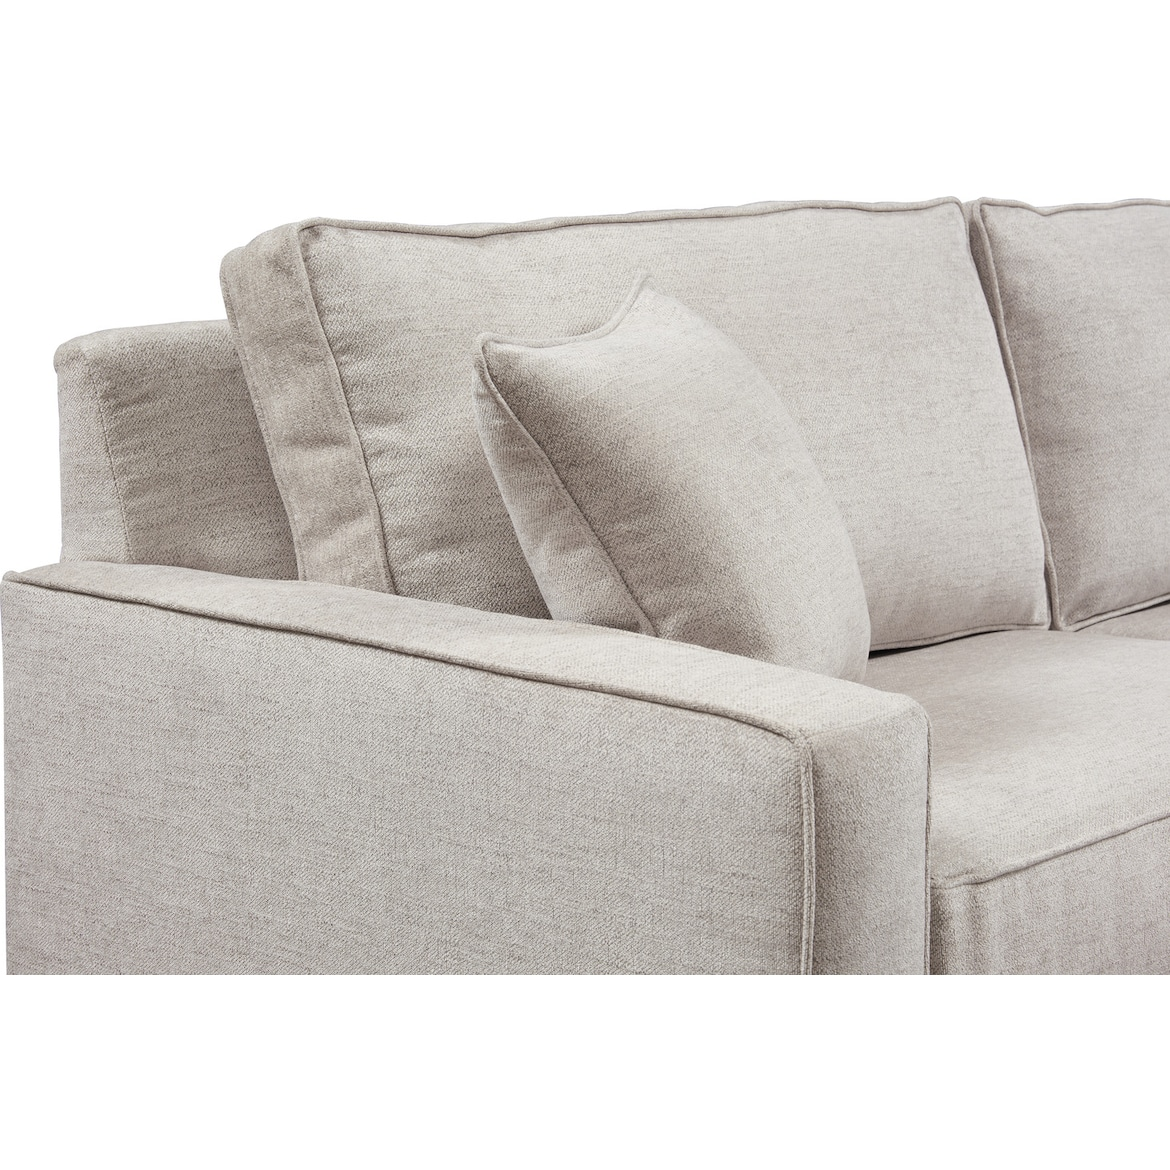 Mayson 88 Quot Full Sleeper Sofa American Signature Furniture